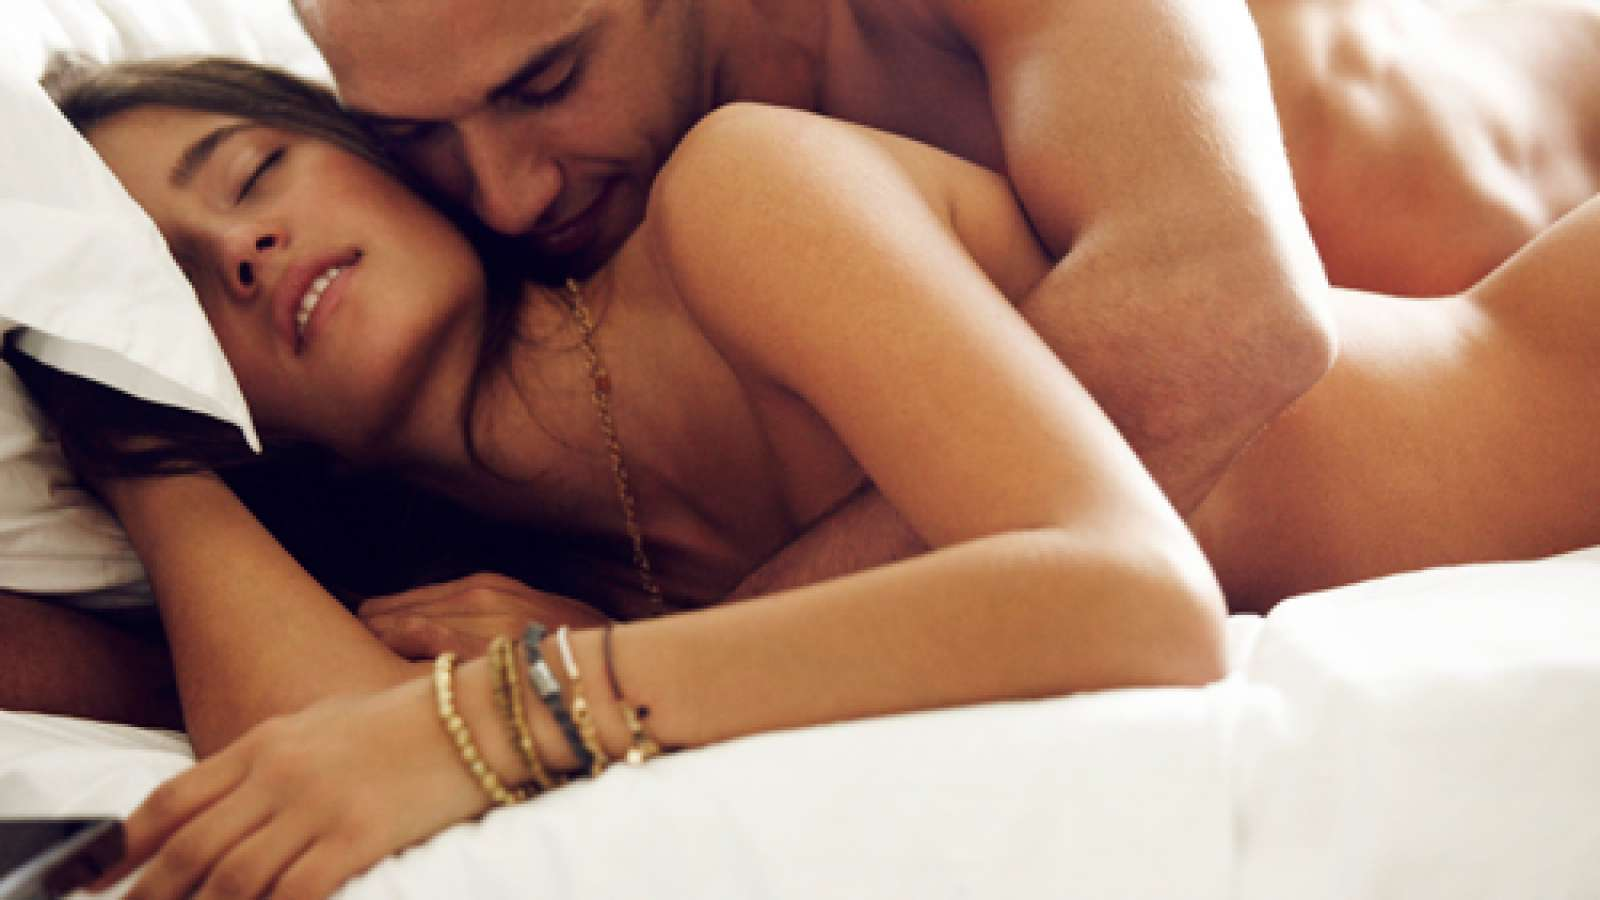 Fresh Most Romantic Bedroom Kisses 39 In With